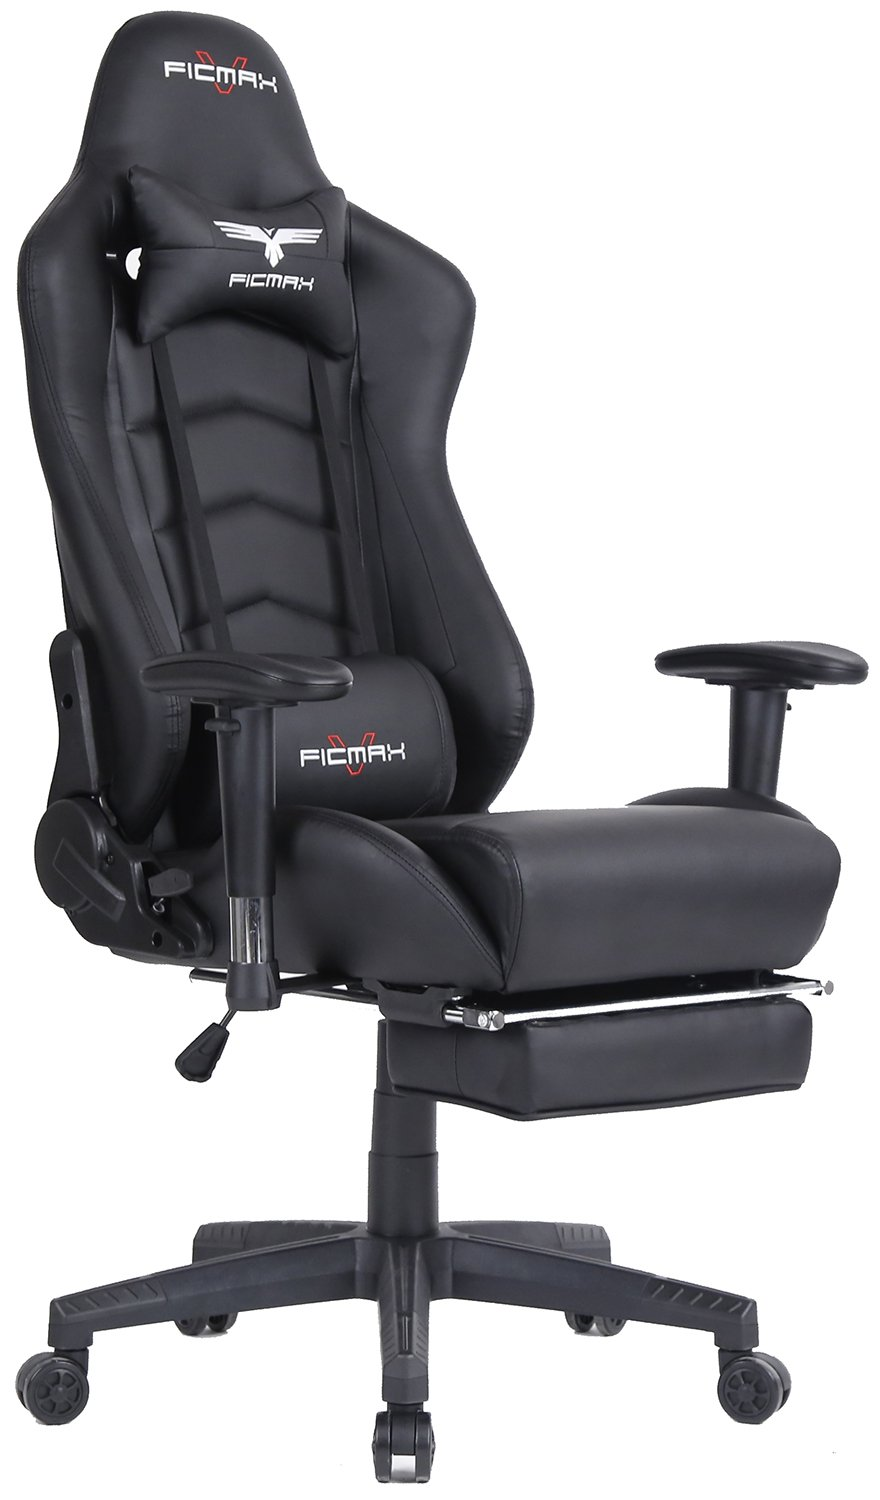 chair itm racing high chairs executive back gaming new pc seat computer style office